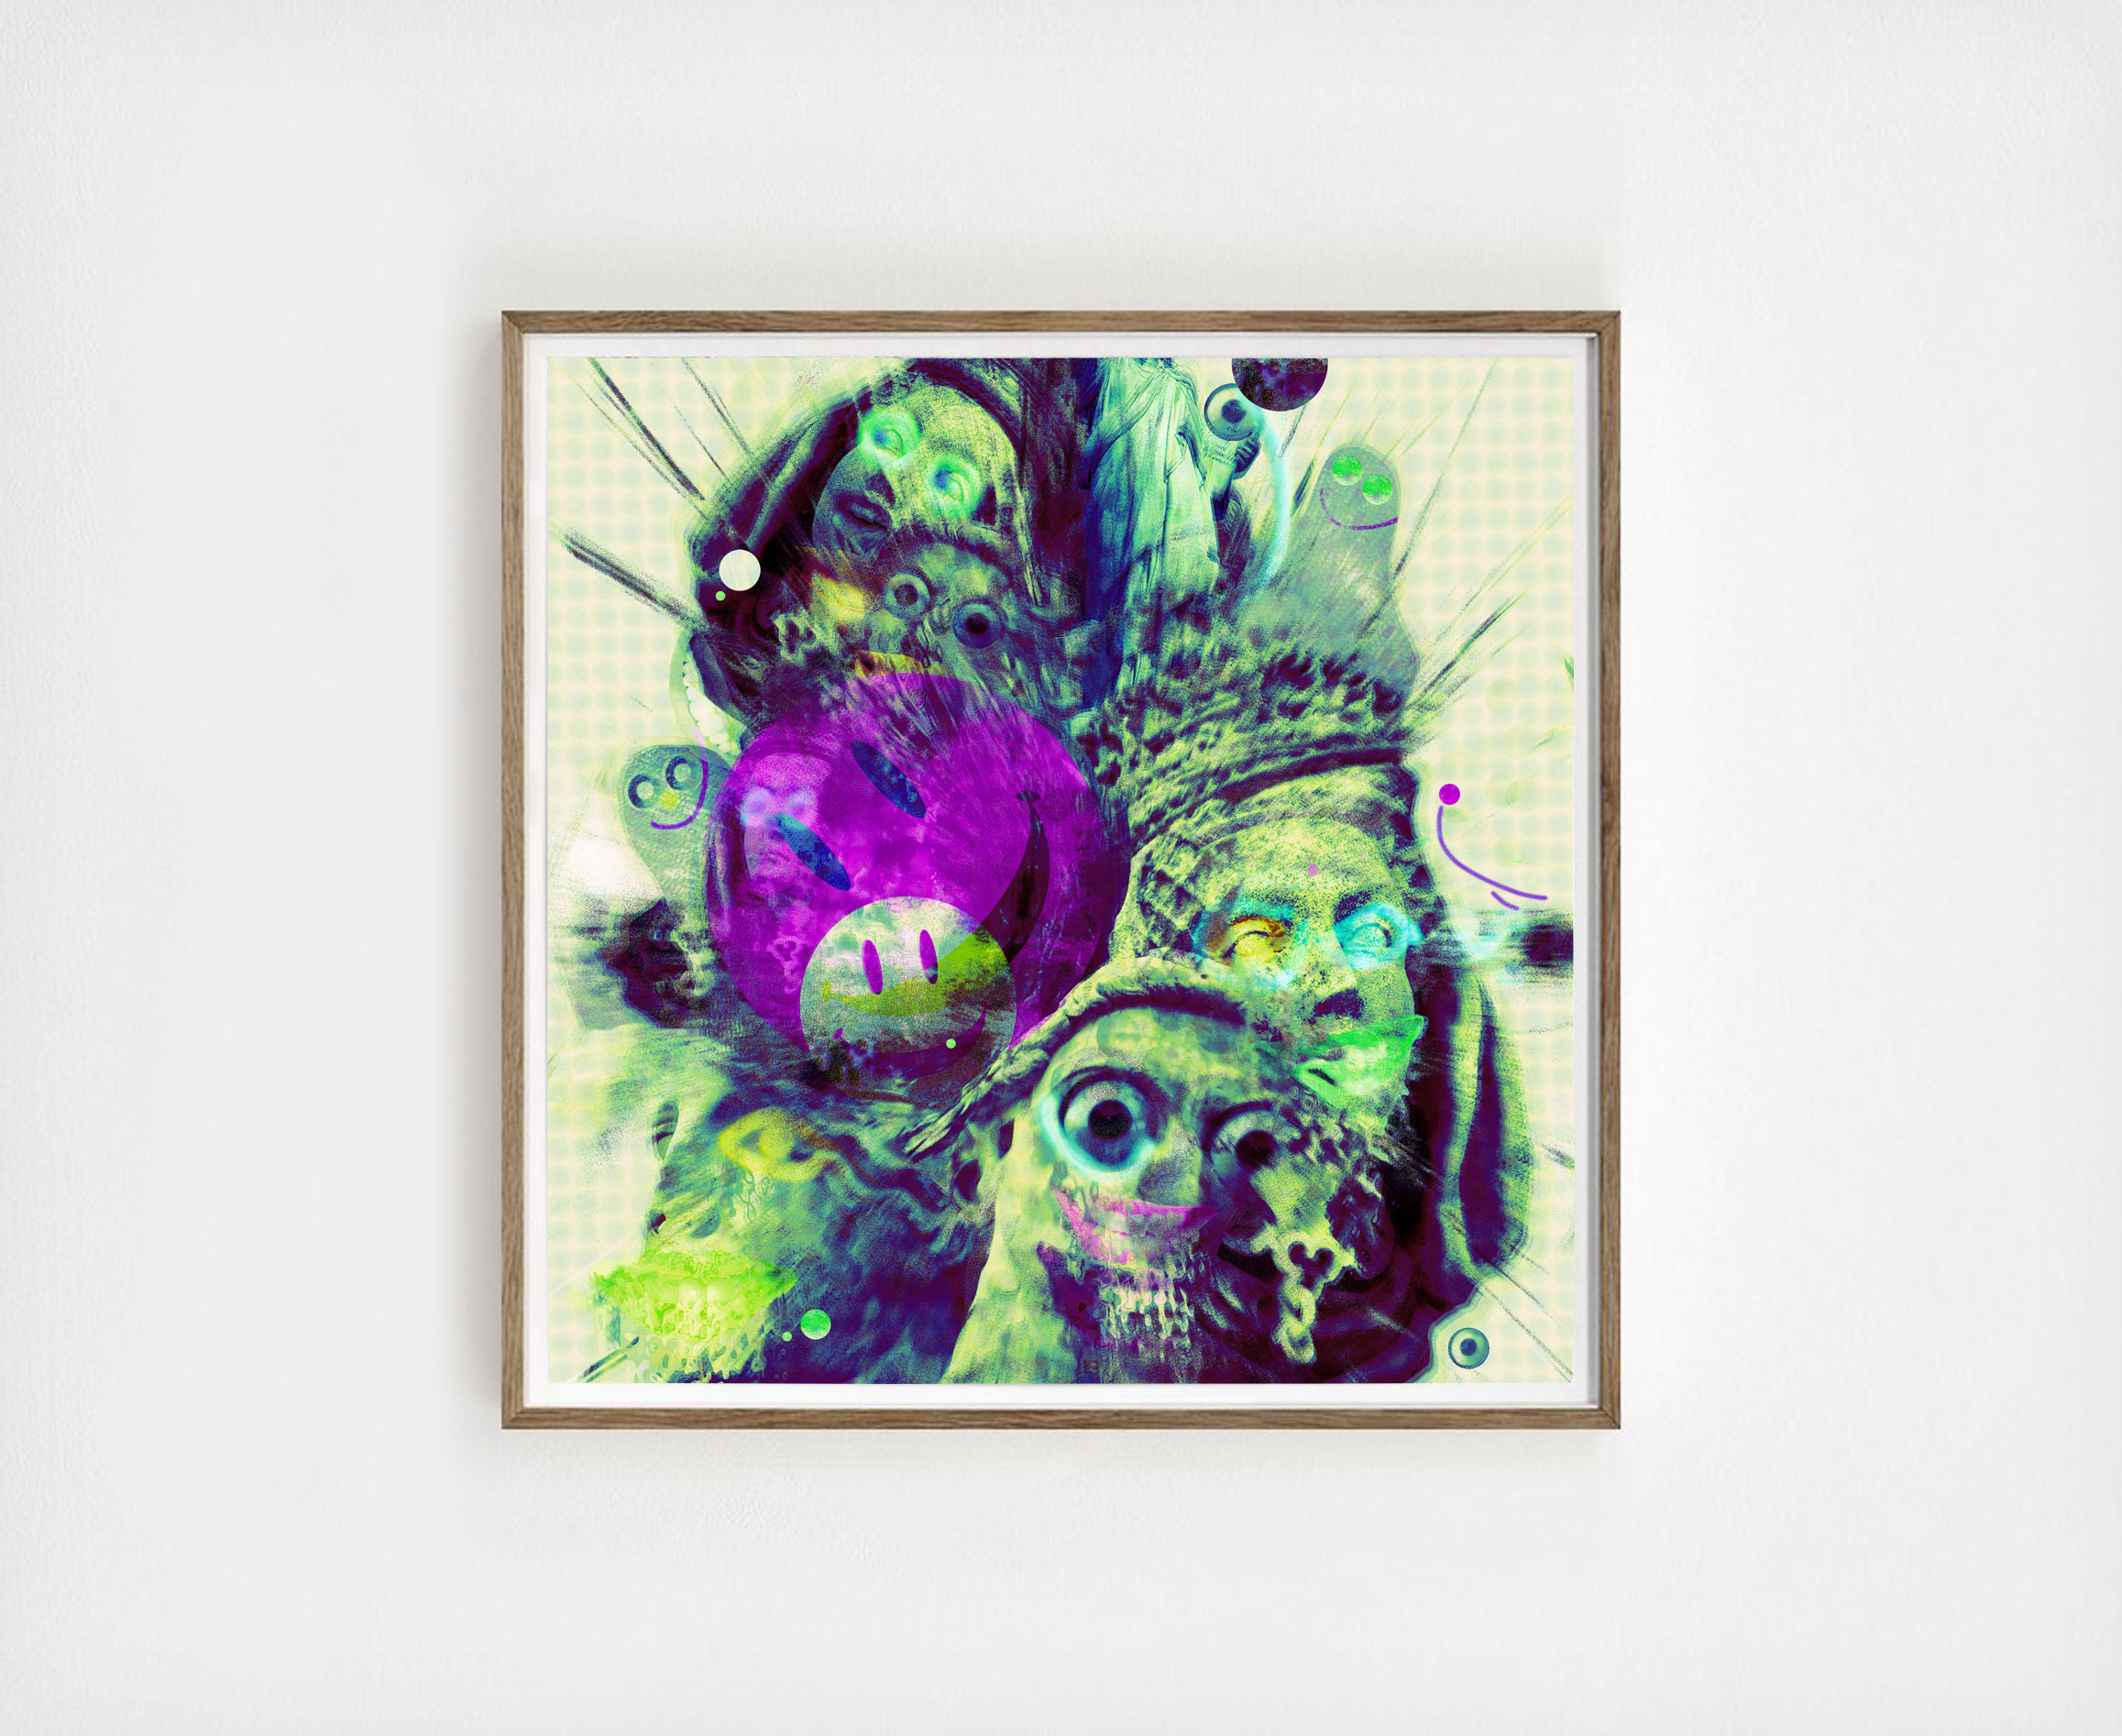 01-PersonalArtPrintsDecor-08a